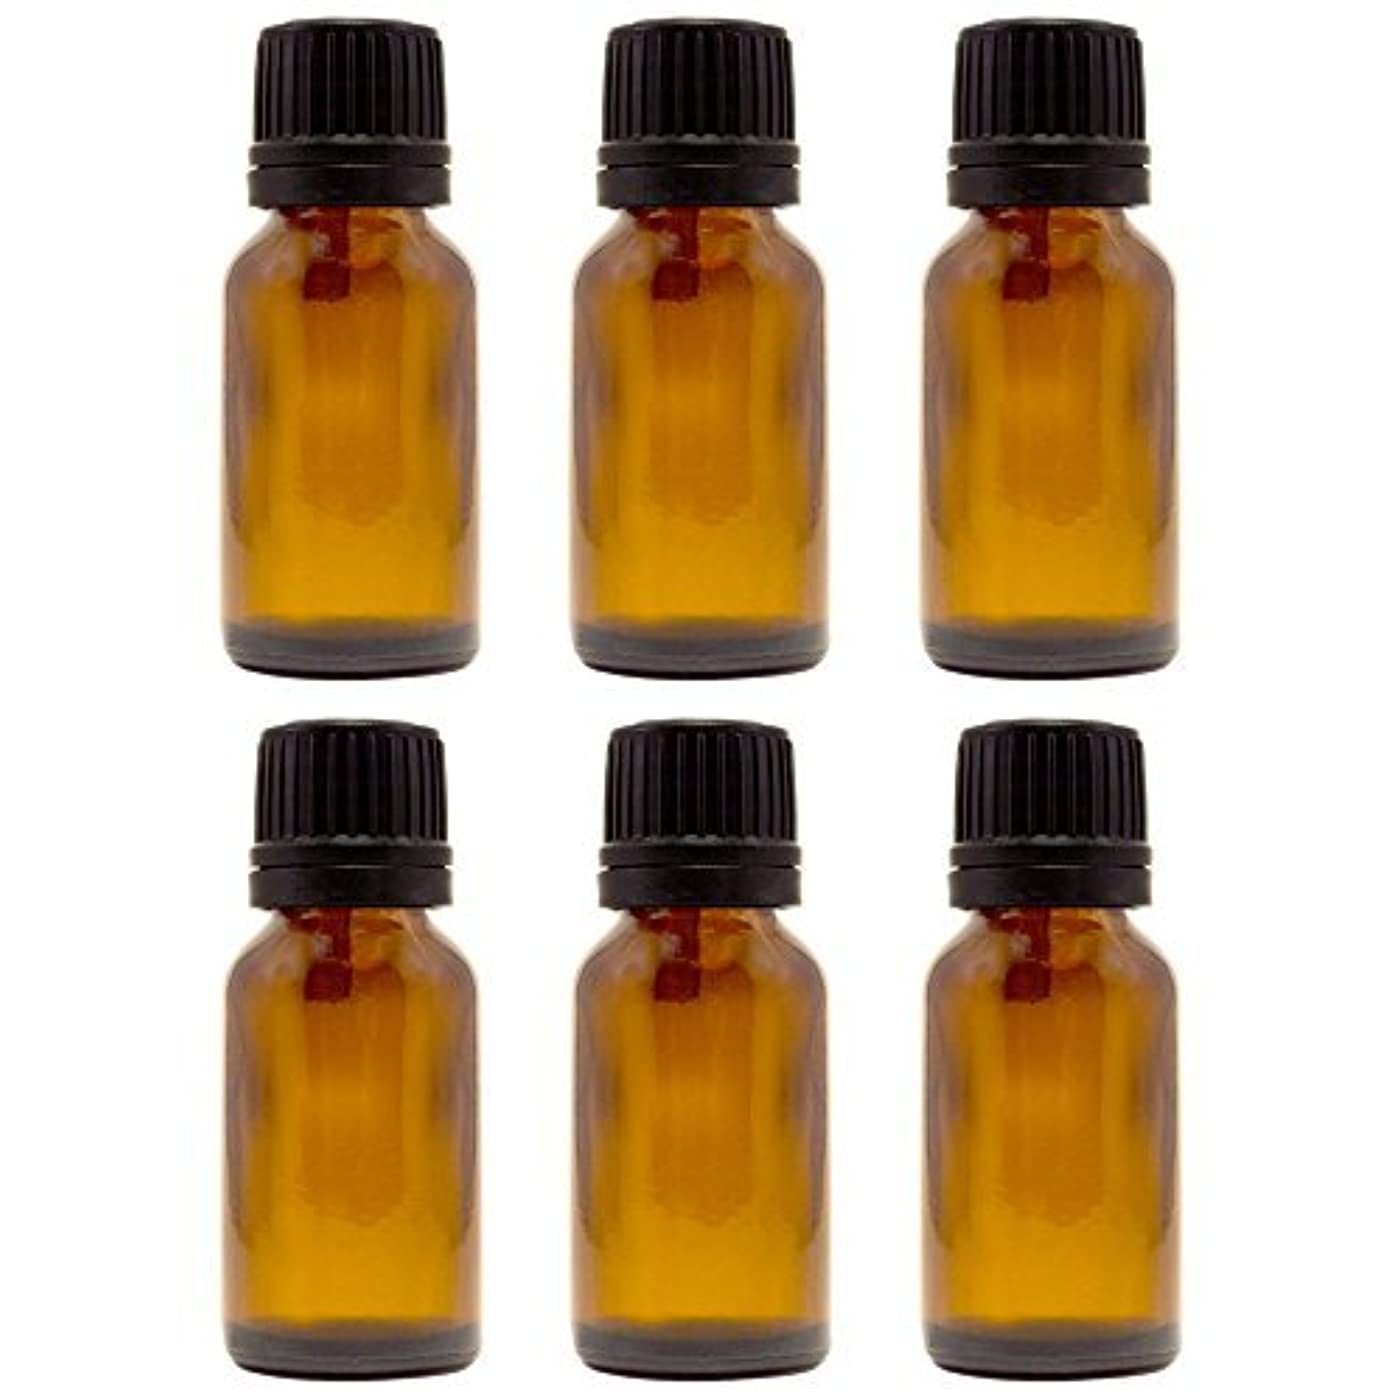 アプライアンス必要コア15 ml (1/2 fl oz) Amber Glass Bottle with Euro Dropper (6 Pack) [並行輸入品]